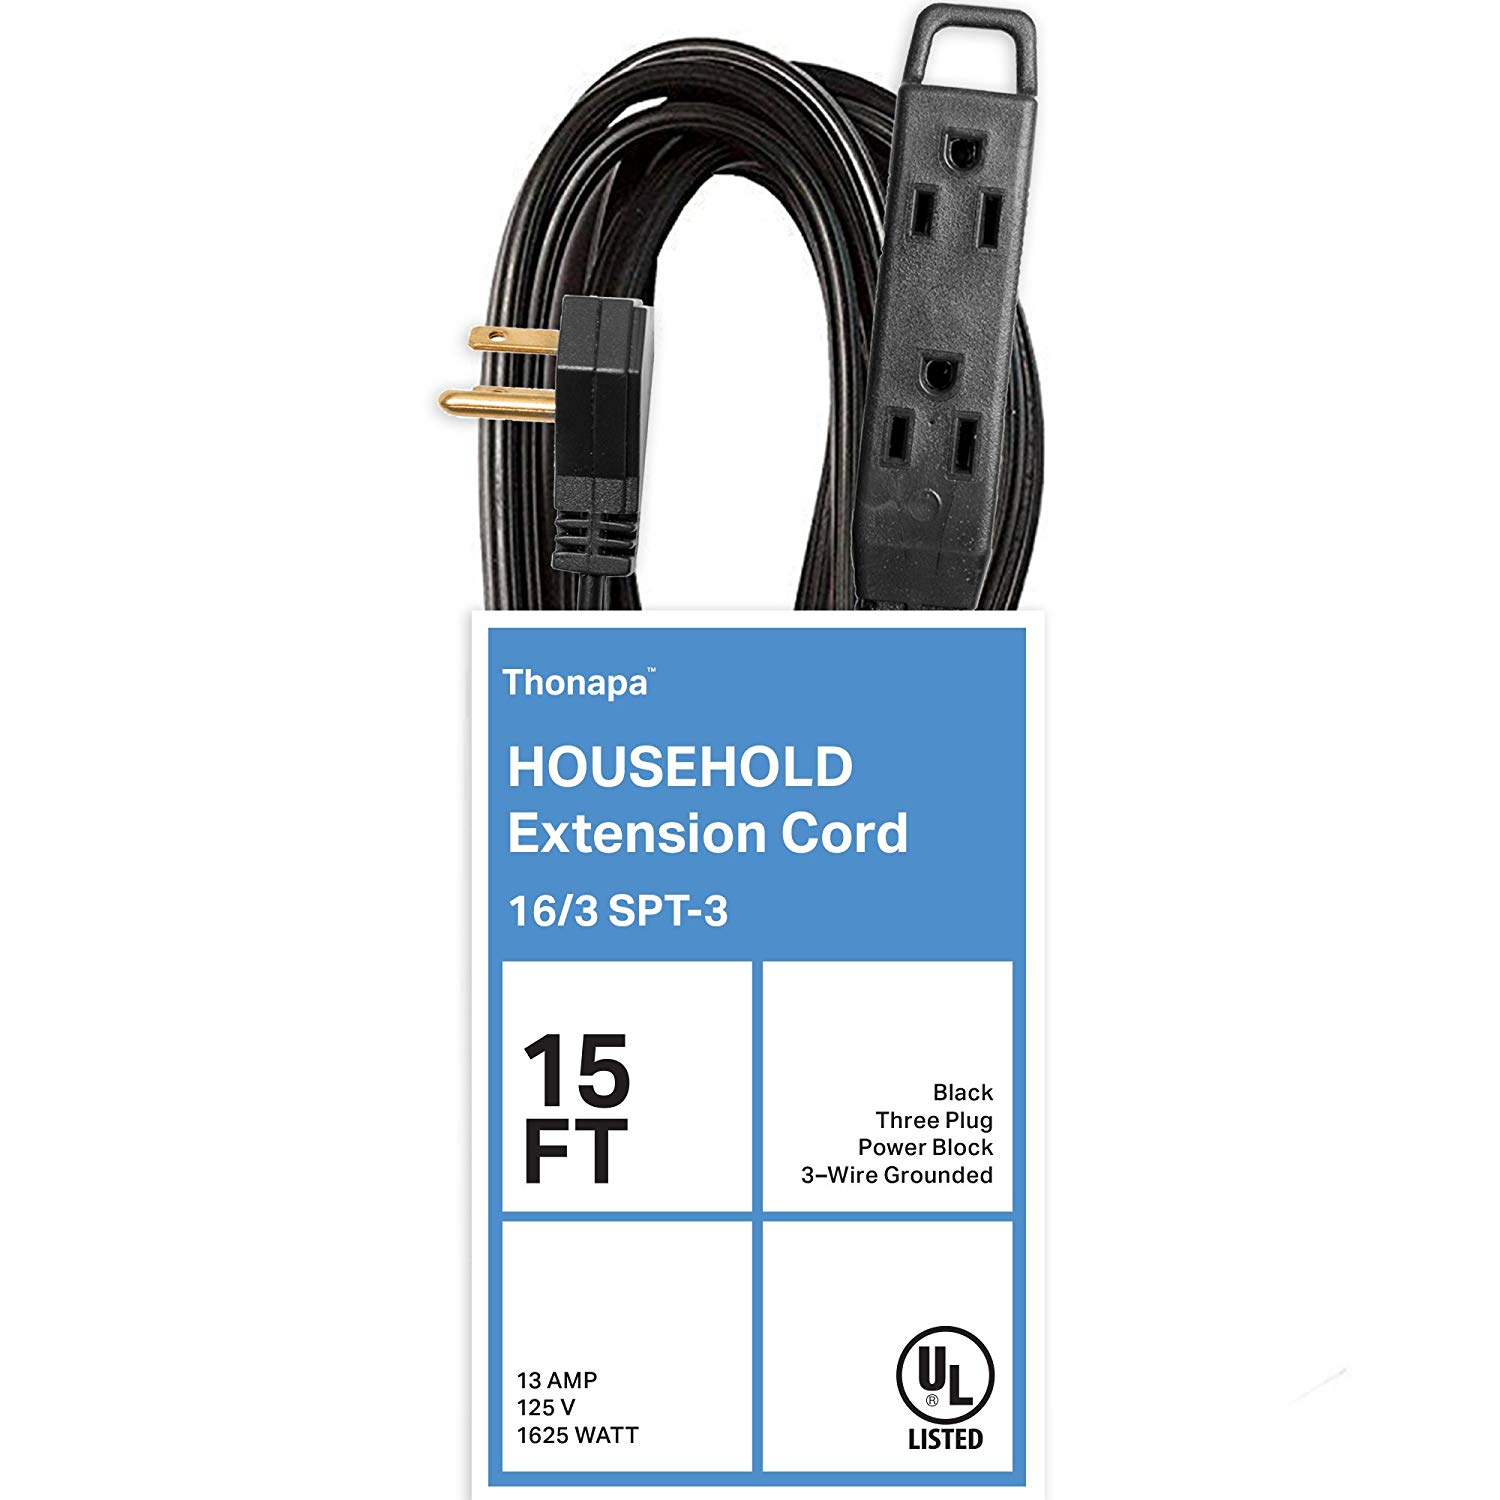 Thonapa 15 Ft Extension Cord with 3 Electrical Power Outlet - 16/3 Durable Black Cable